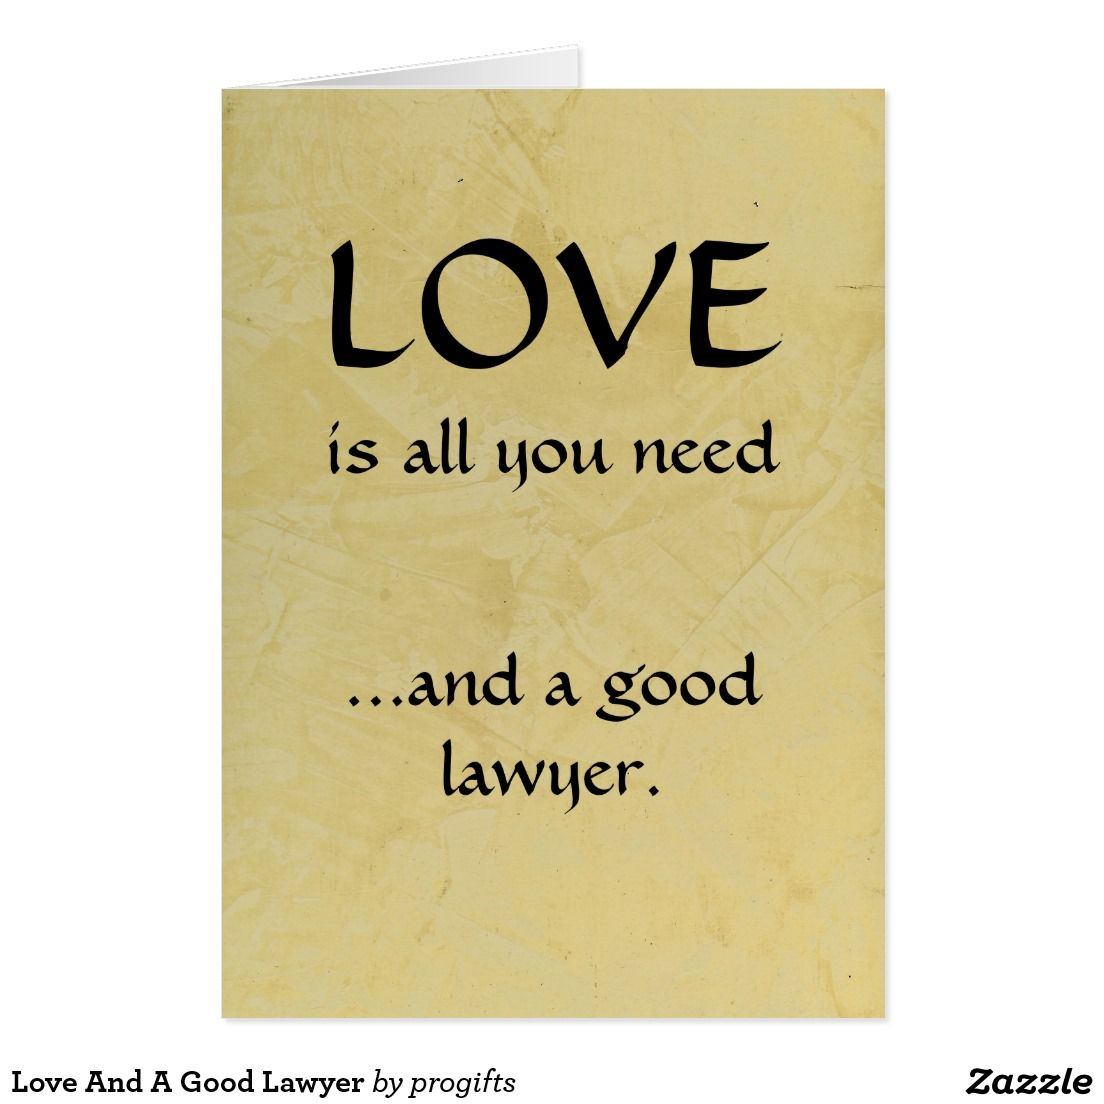 Love And A Good Lawyer Card Designed By Corbin Henry For Zazzle Funnycards Lawyerbirthdaycards Birthdaycards Progifts